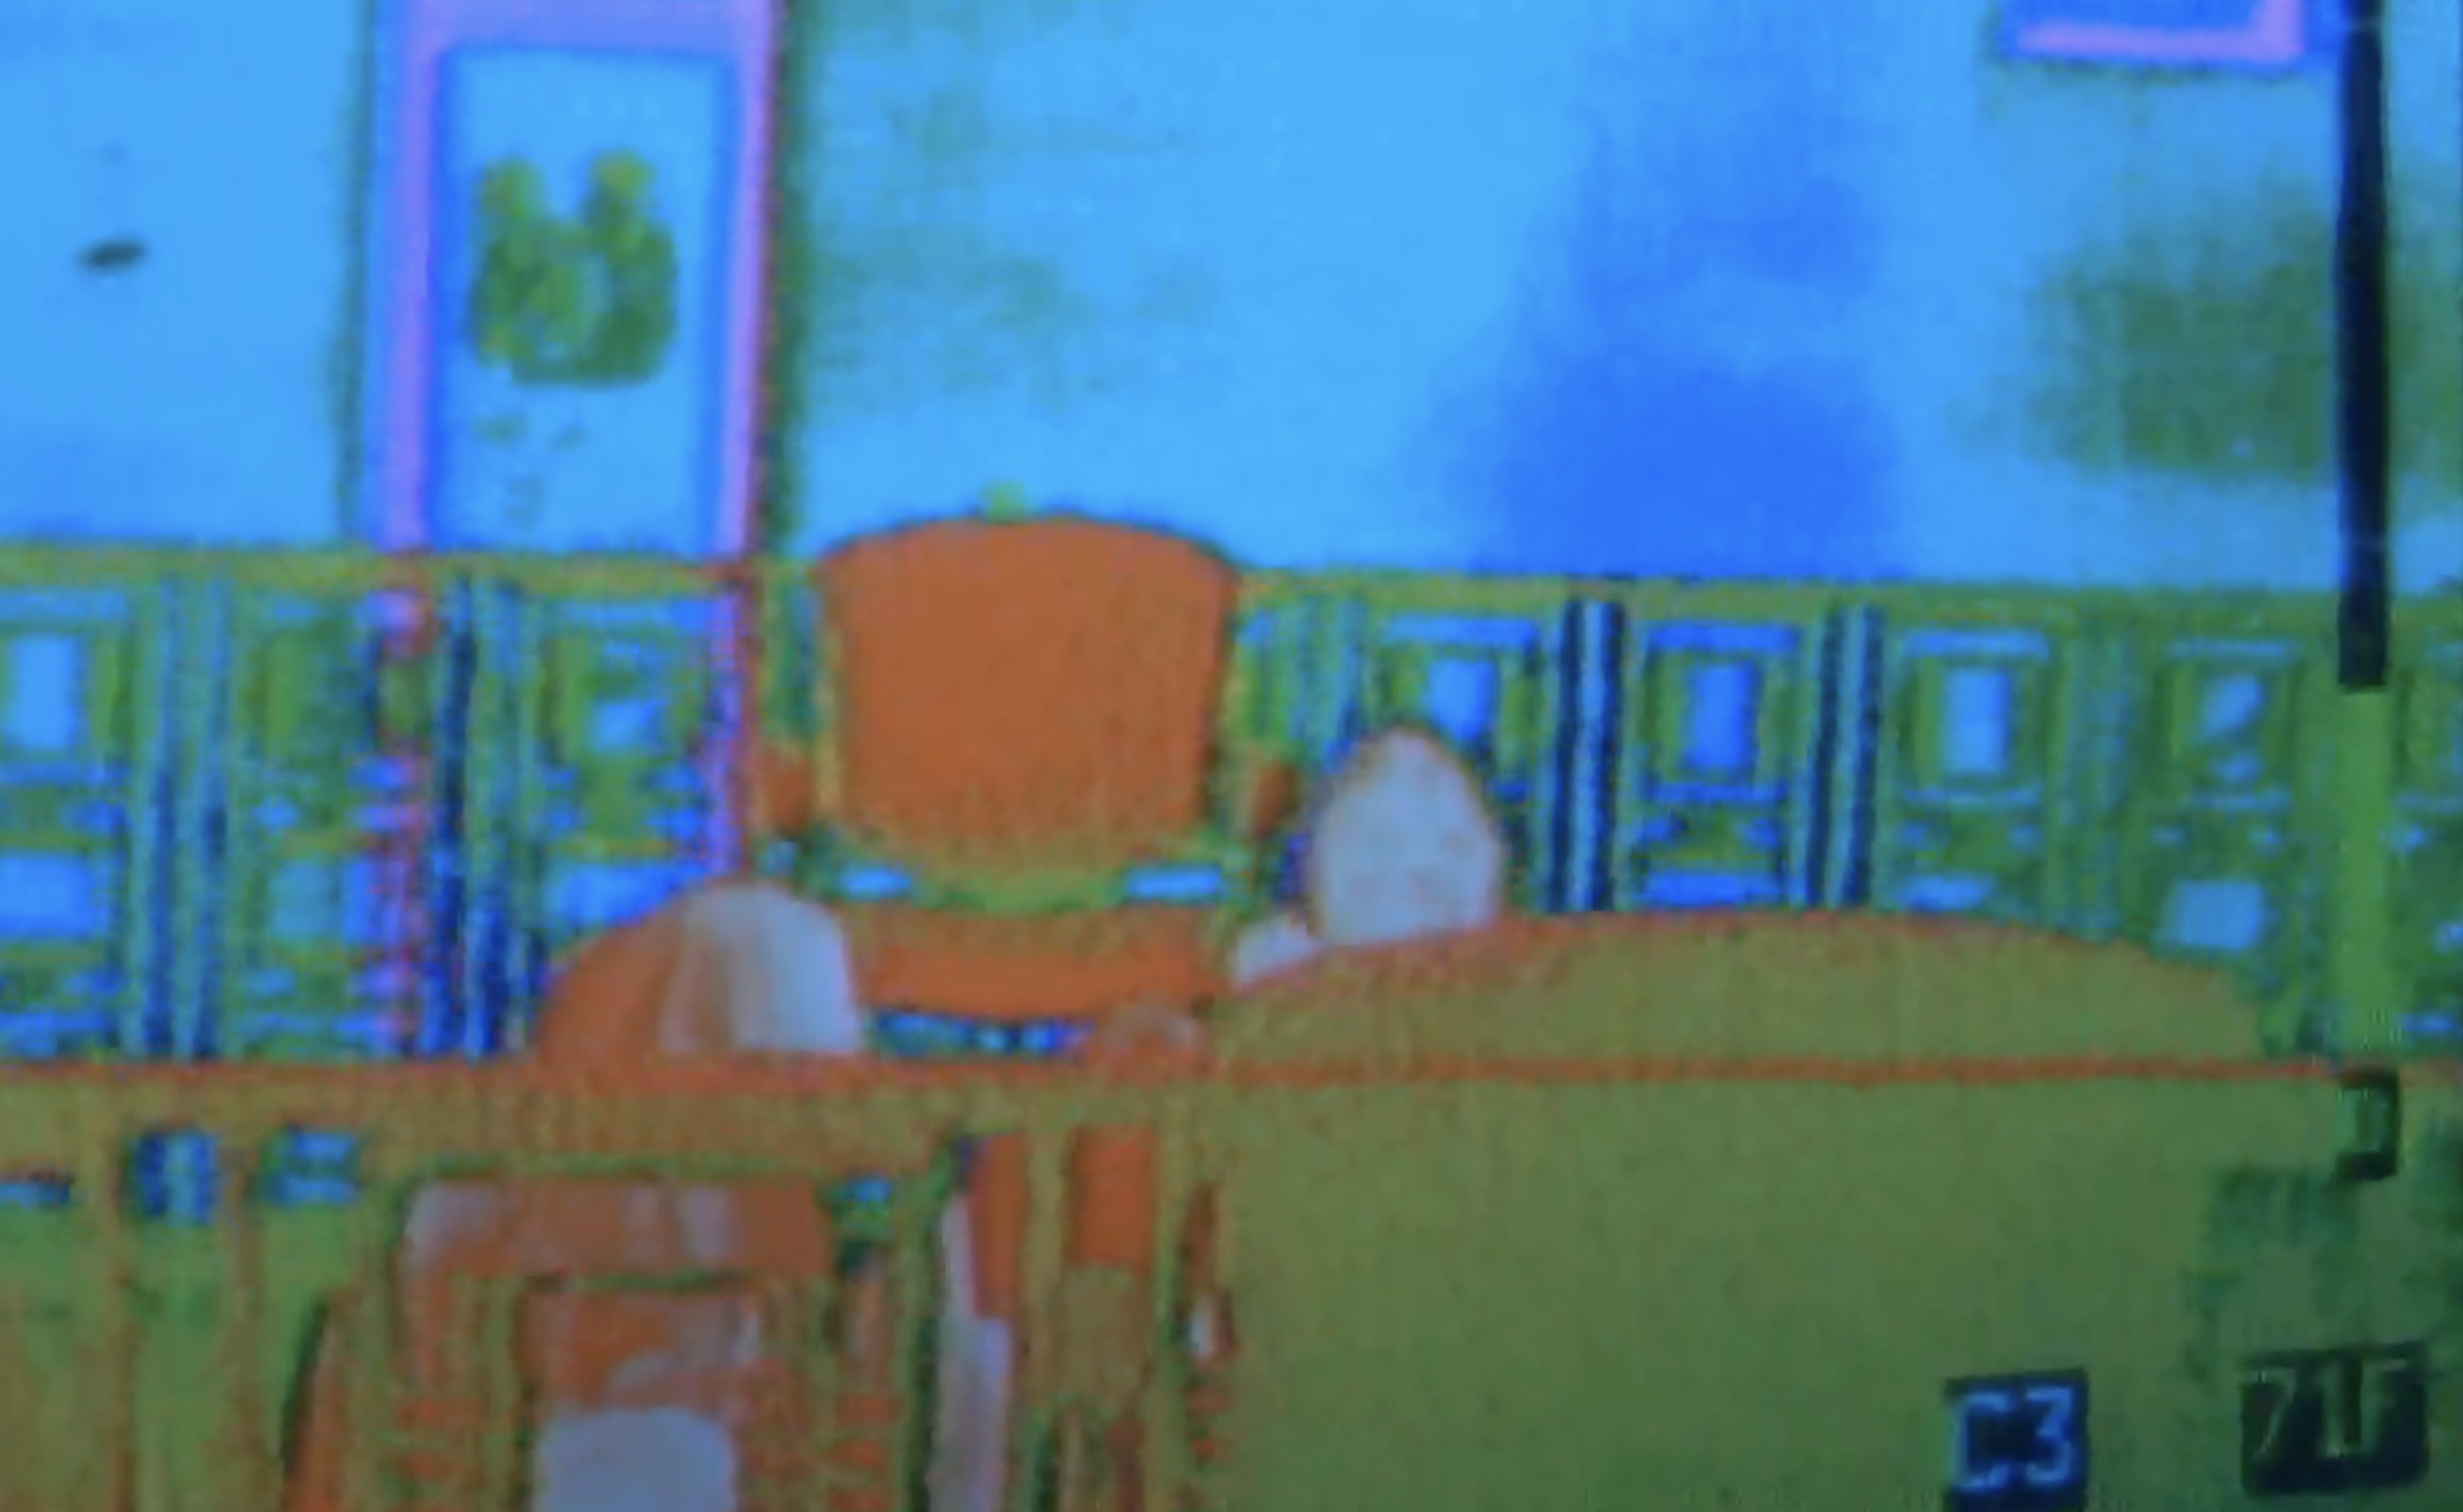 Team True Believers, as seen through the thermal imaging camera.